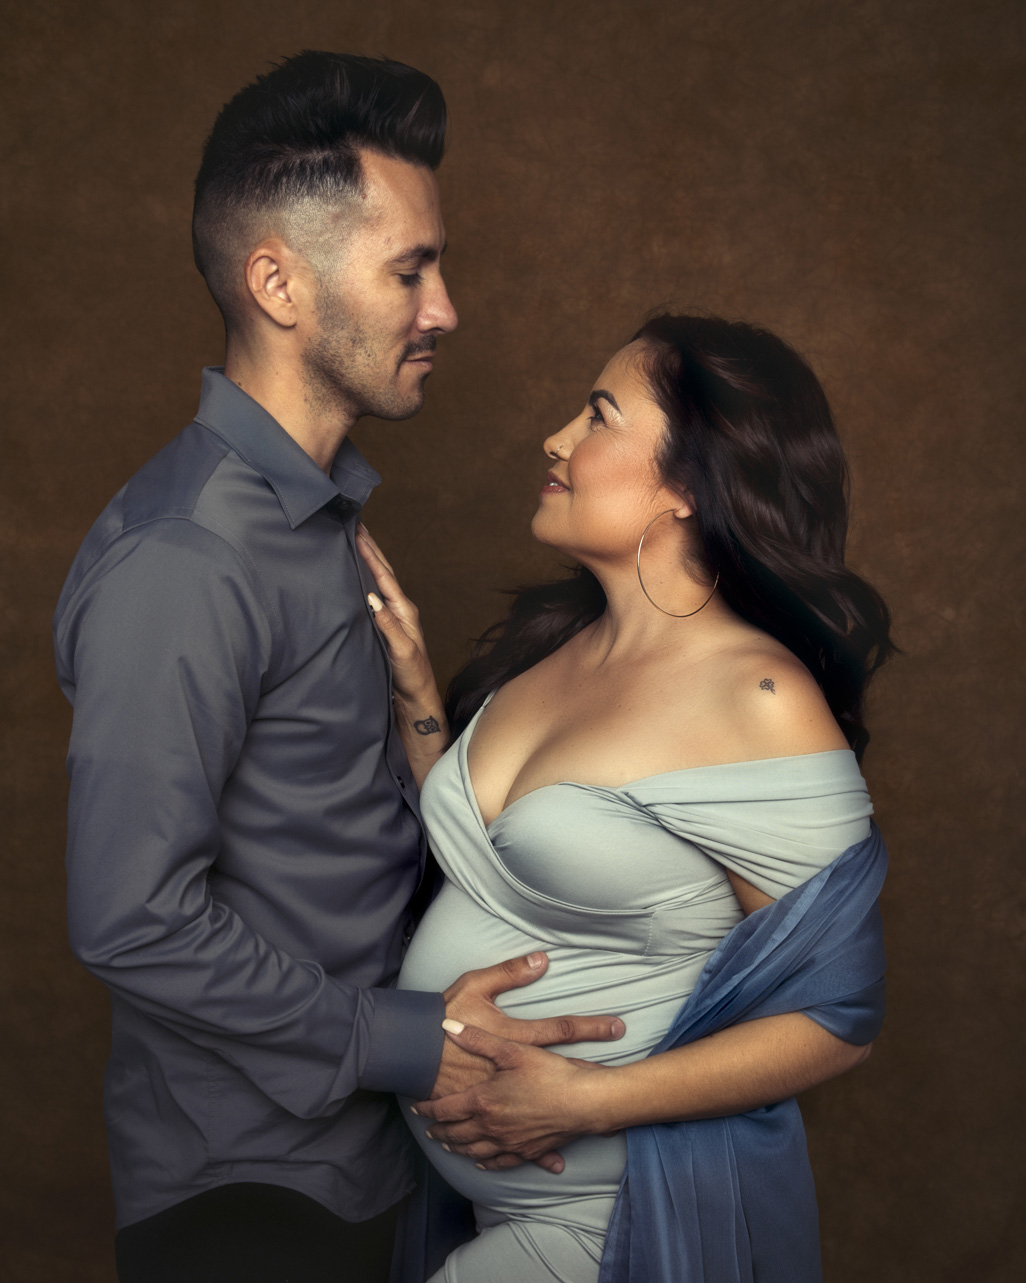 Color maternity portrait and a wife and husband